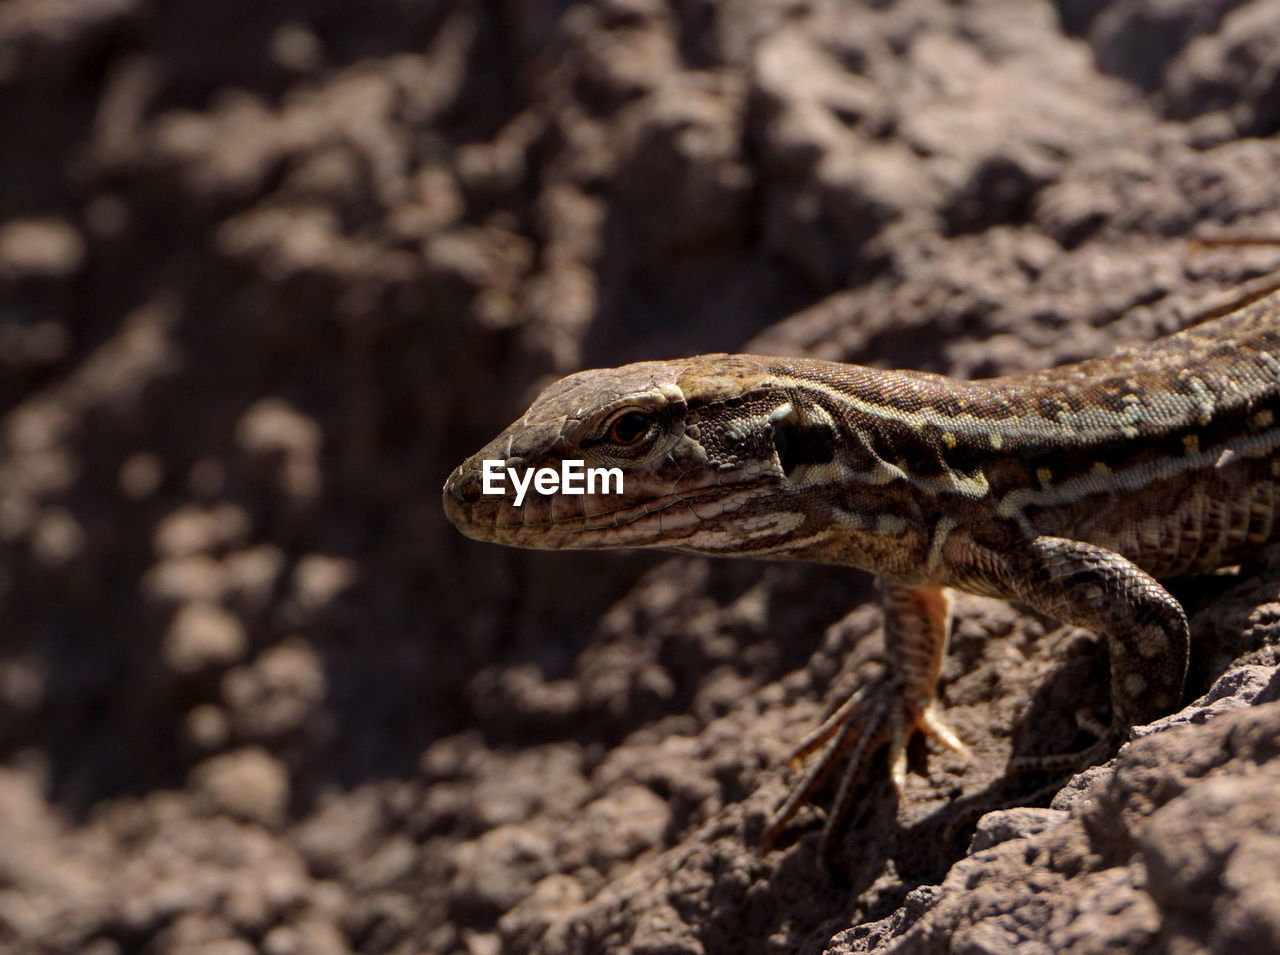 reptile, animal themes, animal, animal wildlife, one animal, vertebrate, animals in the wild, lizard, close-up, no people, focus on foreground, animal body part, day, nature, animal head, land, zoology, sunlight, side view, outdoors, animal eye, animal scale